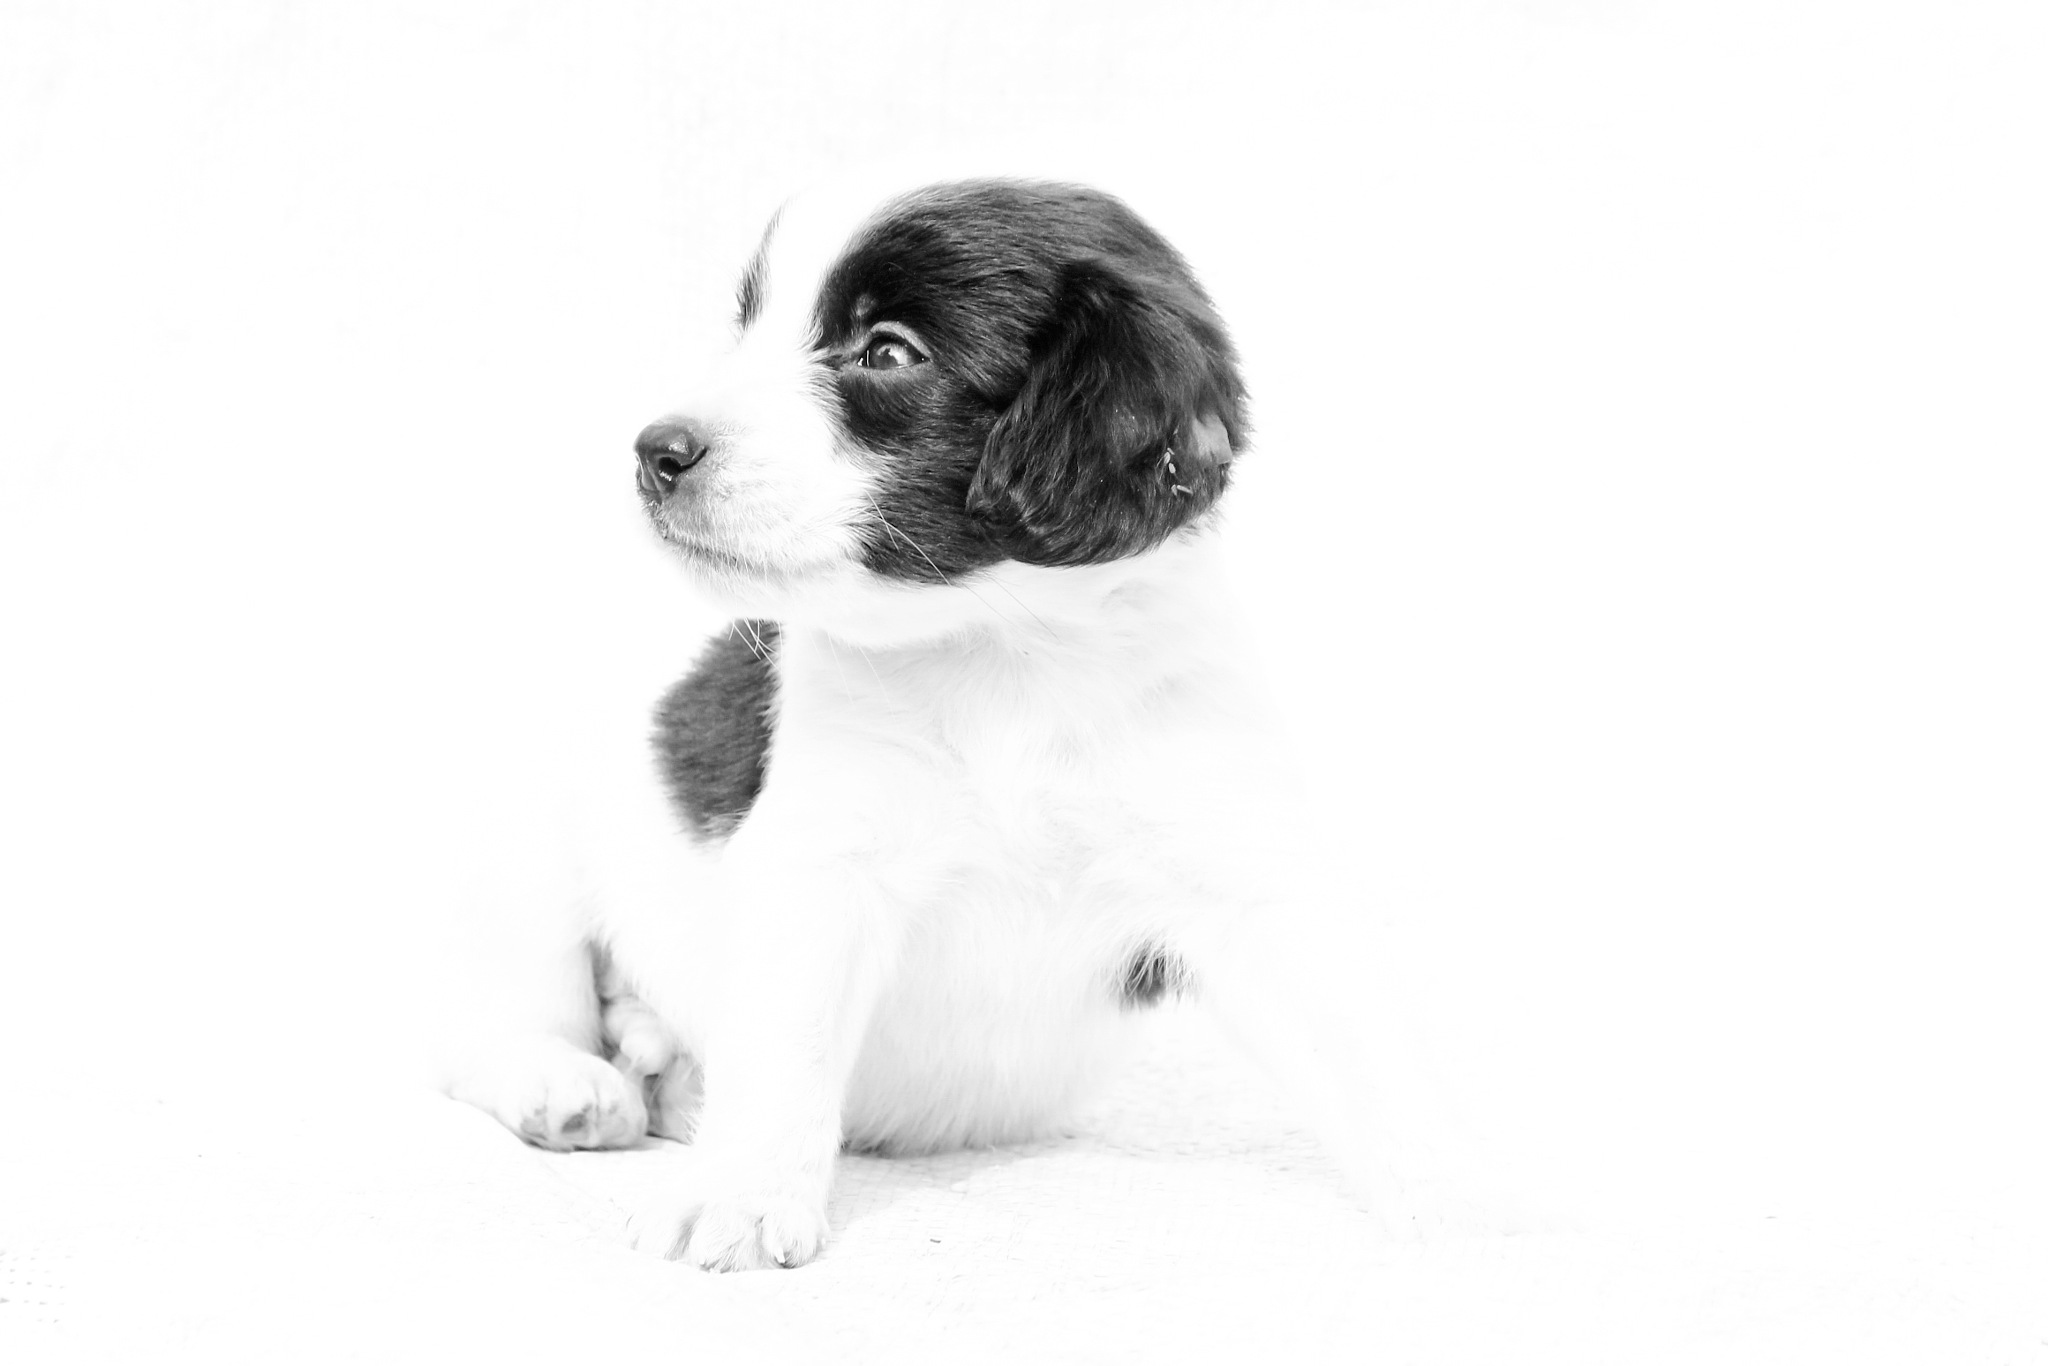 Puppy by susilshah